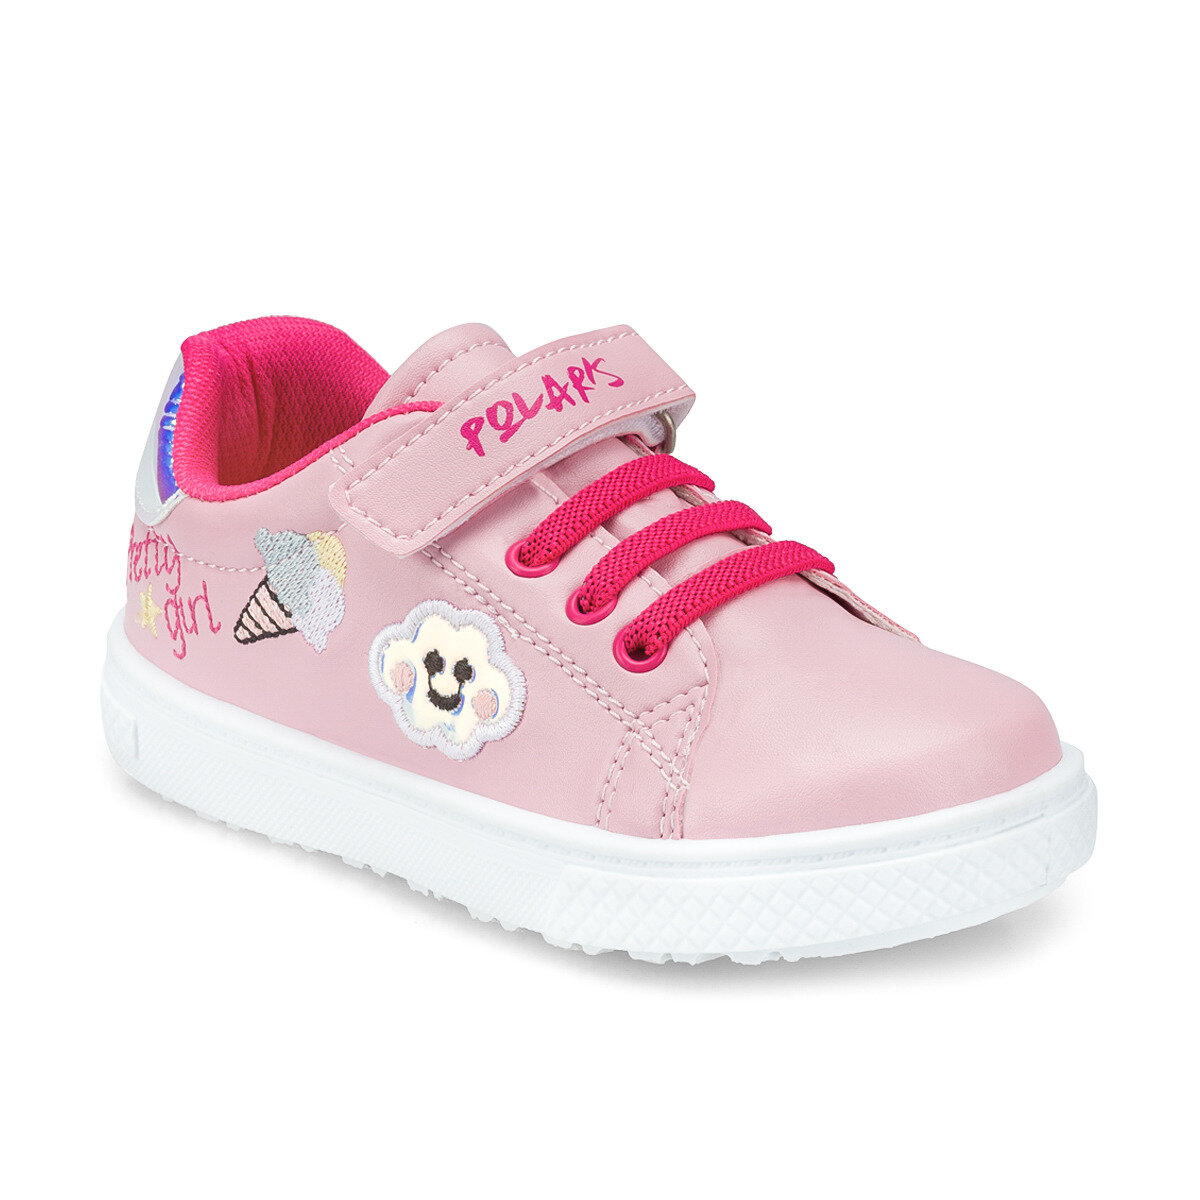 FLO 512288.P Pink Female Child Sneaker Shoes Polaris